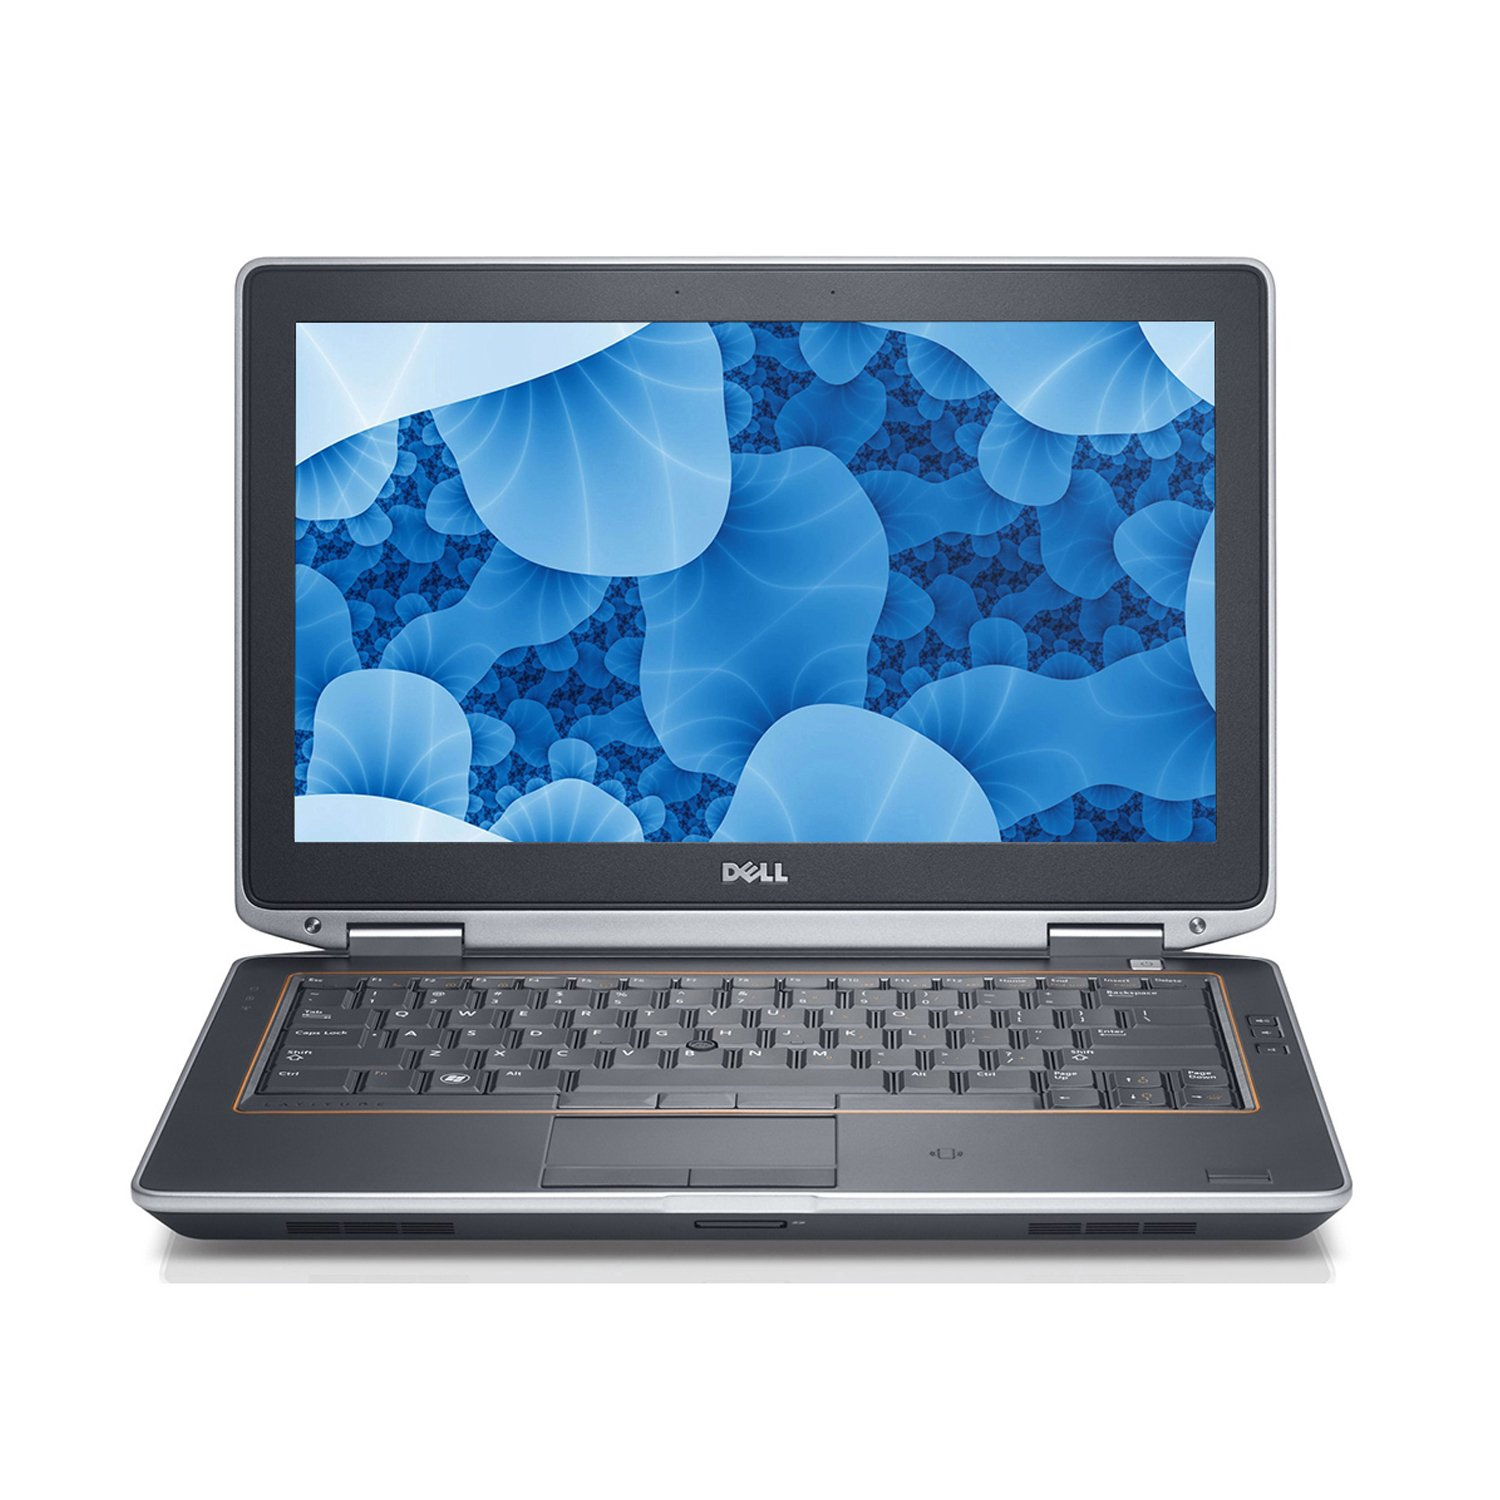 Dell Latitude E6320 Intel Core i5 2520m 2 5GHz 4GB DDR3 Ram 120GB Solid  State Drive Windows 10 Professional (Renewed)